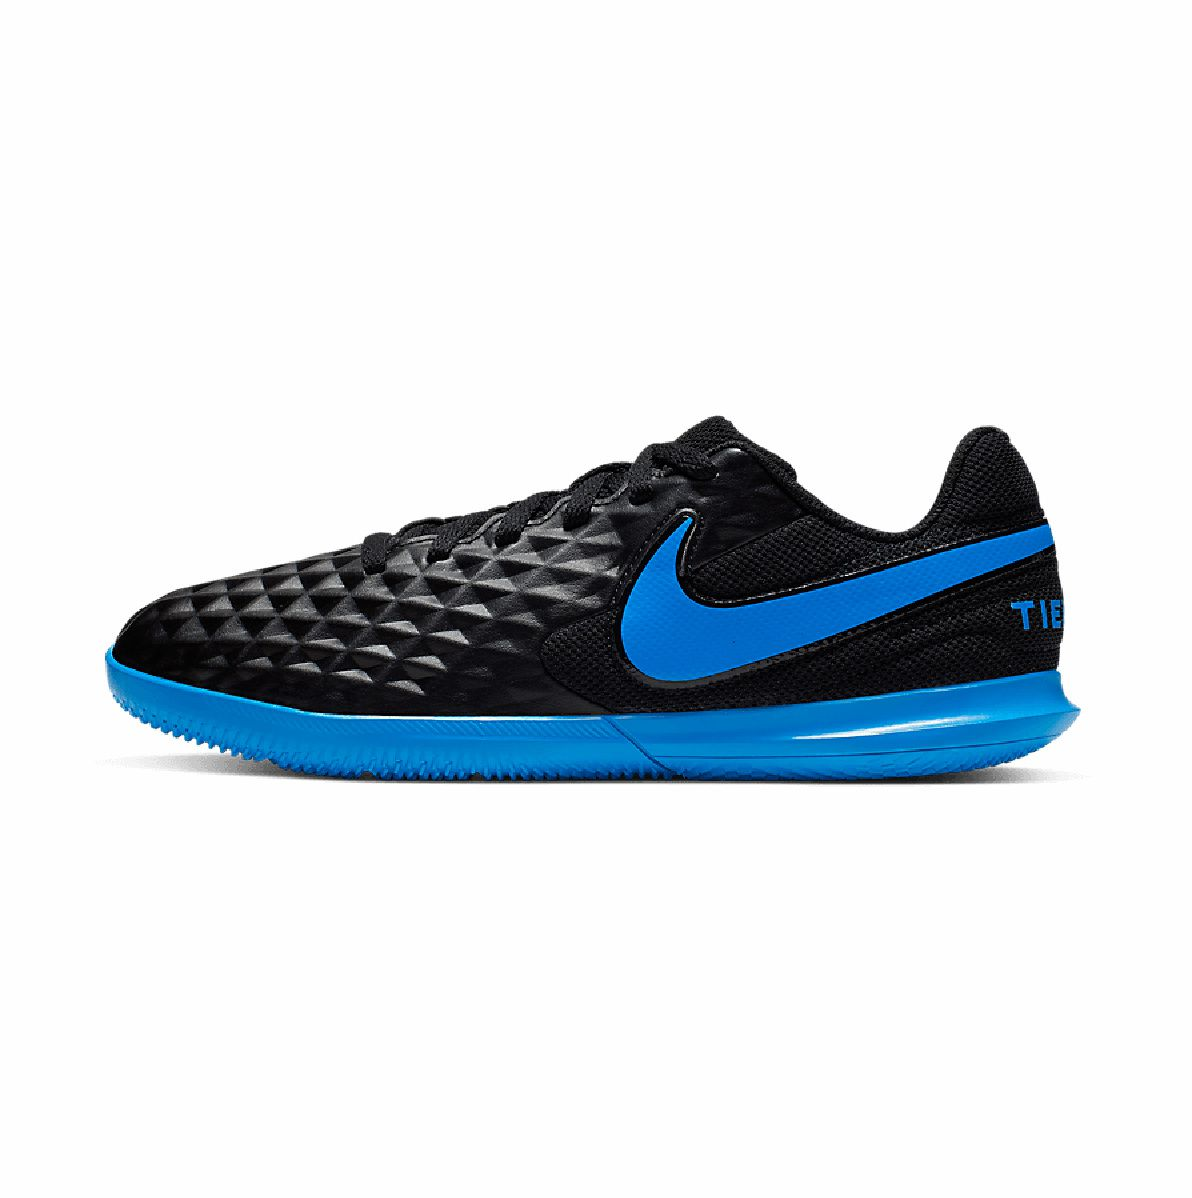 Tenis Nike Tiempo Legend 8 Club IC JR Chuteira Futsal Infantil AT5882-004